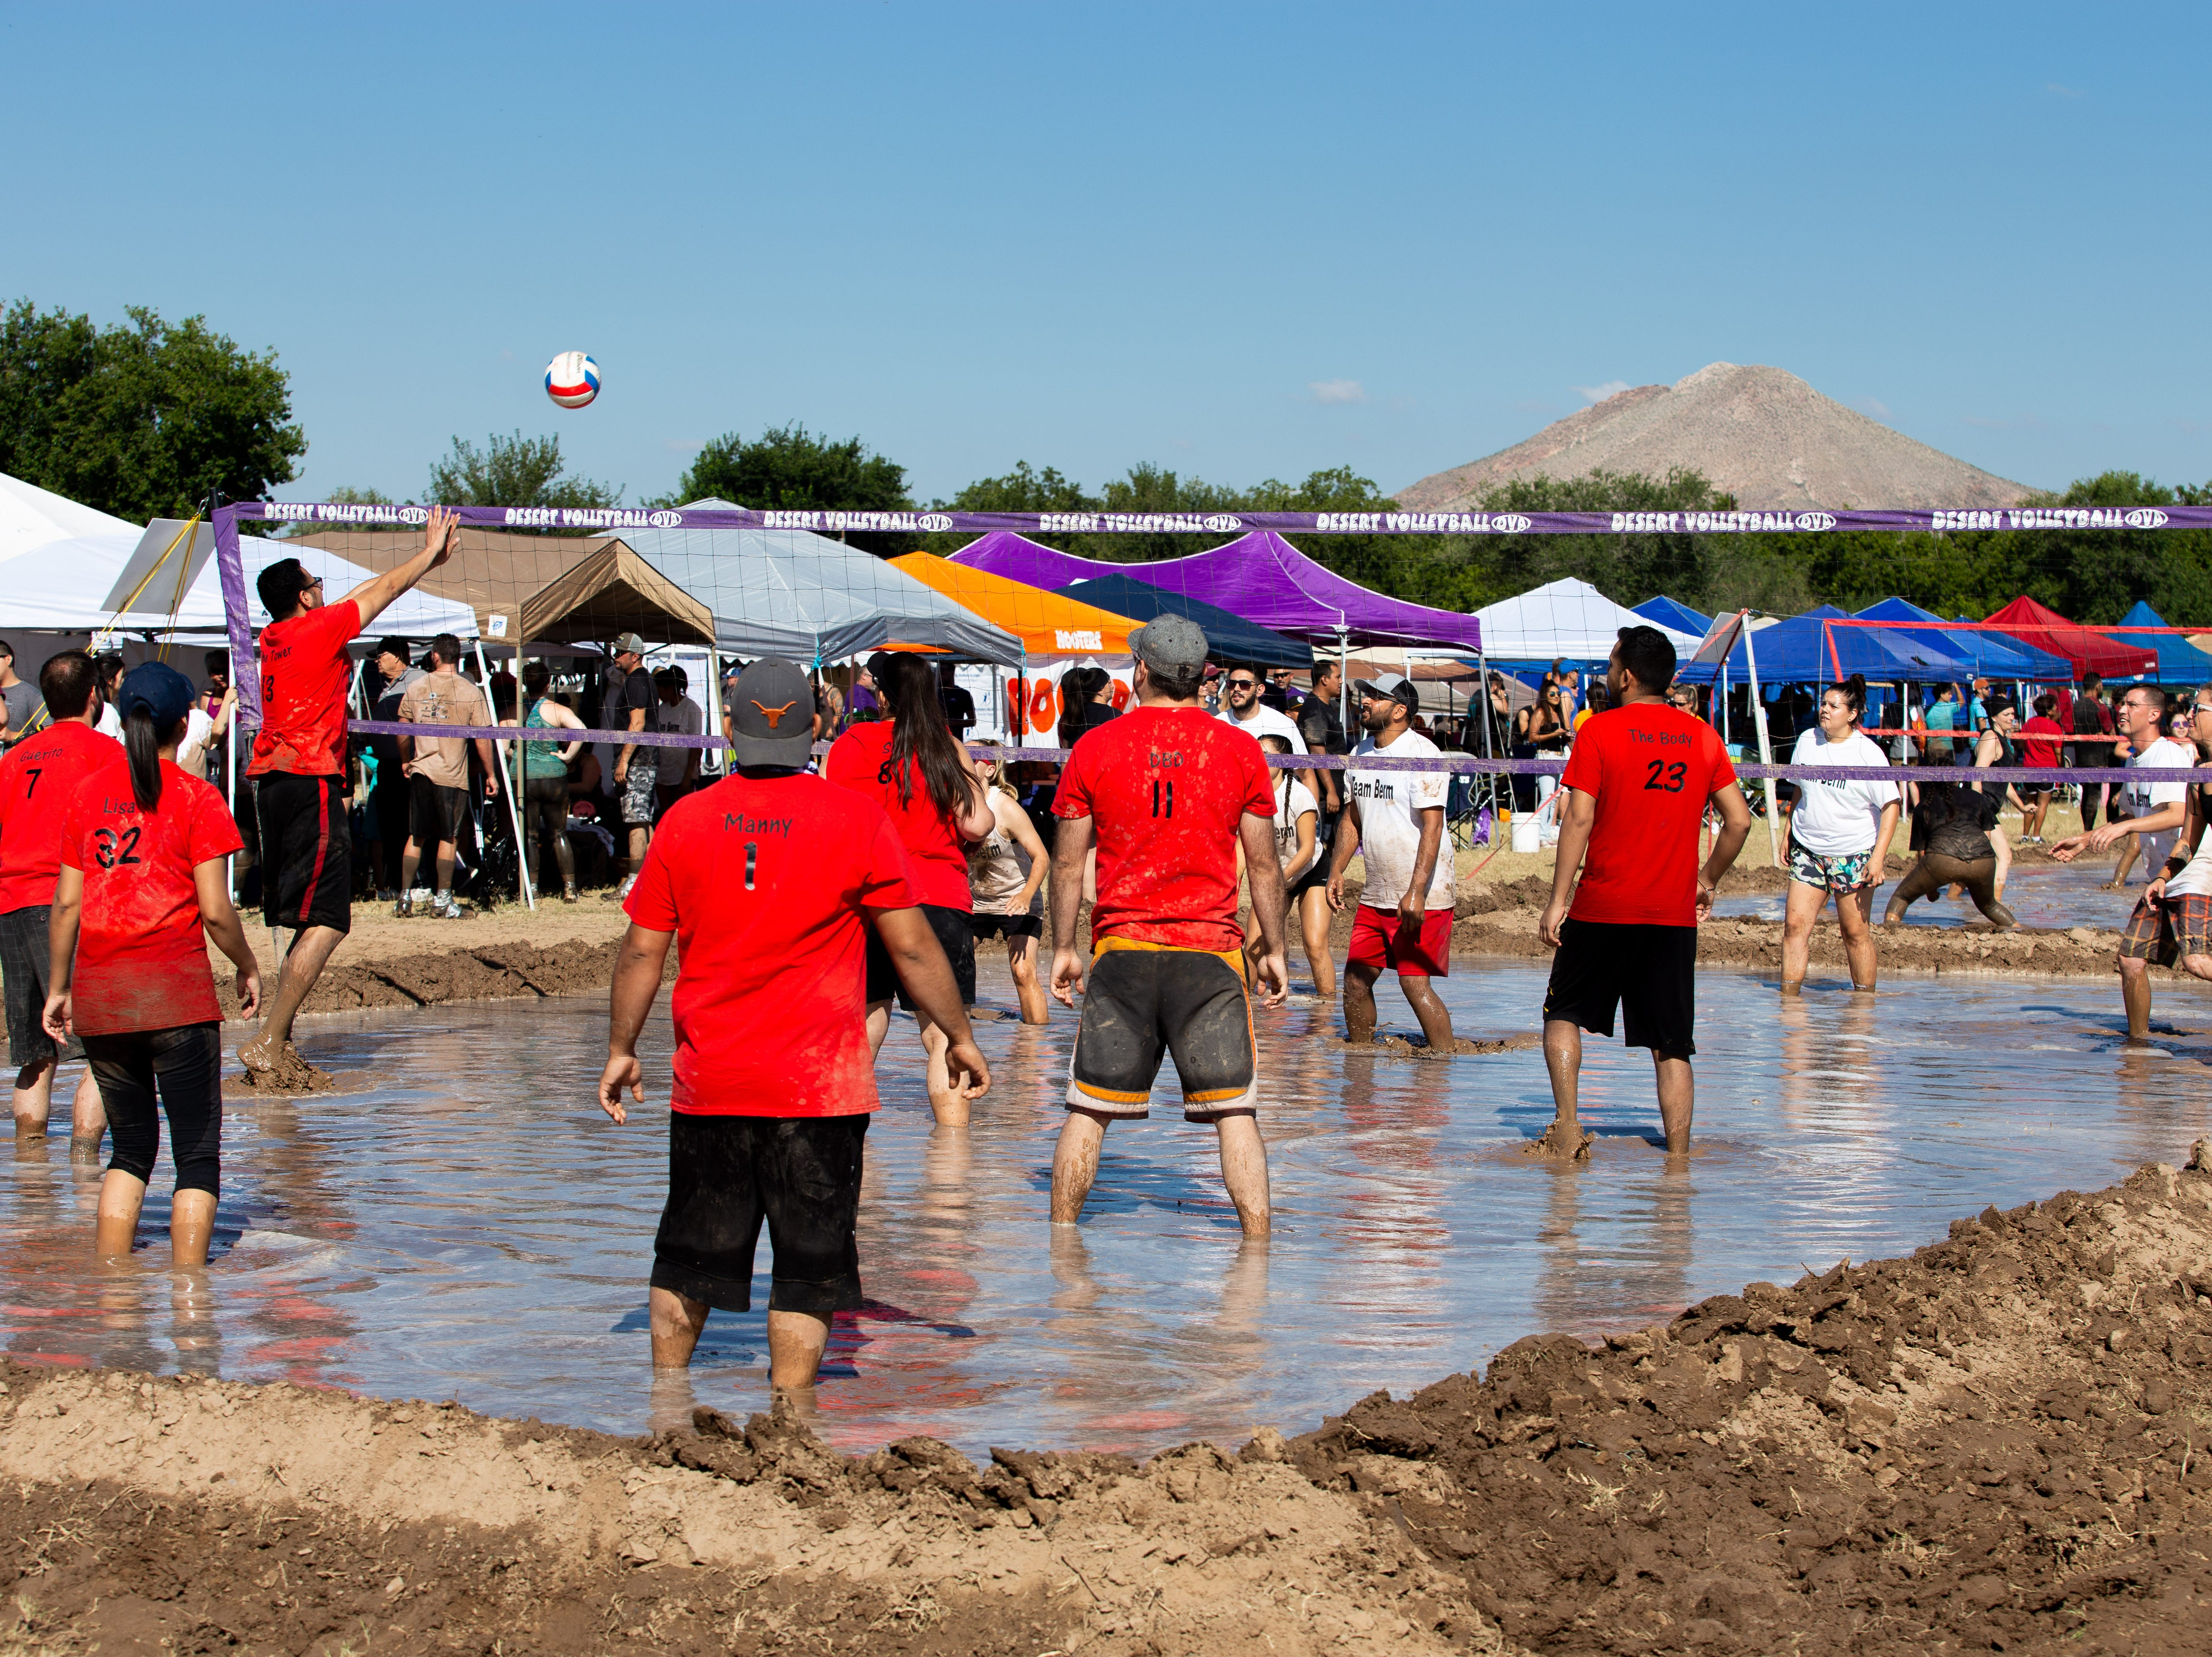 Enthusiastic players in colorful uniforms participated in the 9th Annual Mudd Volleyball tournament on September 8, 2018.